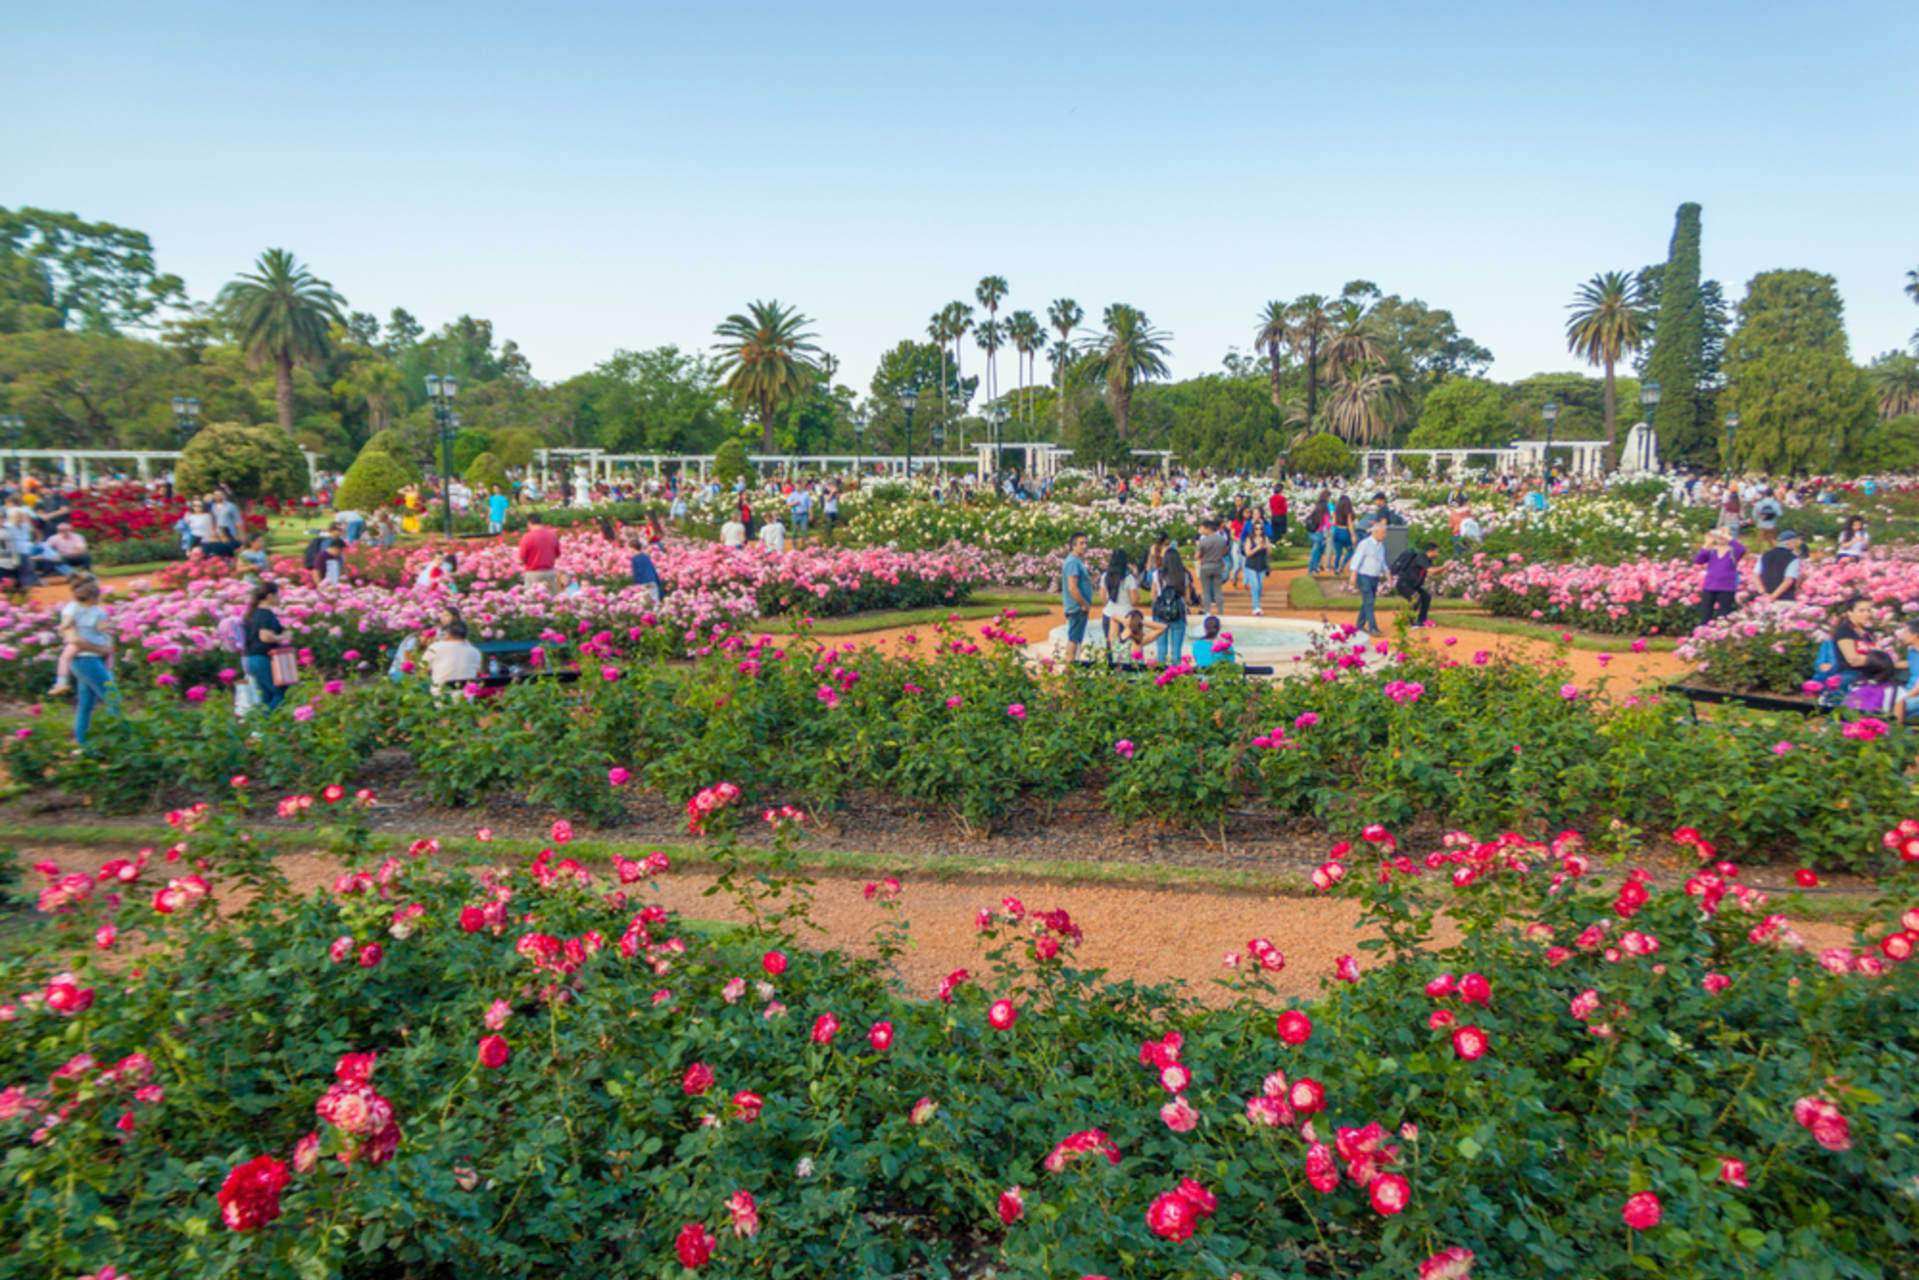 Buenos Aires - Poetry at the Rose Garden: El Rosedal of Buenos Aires